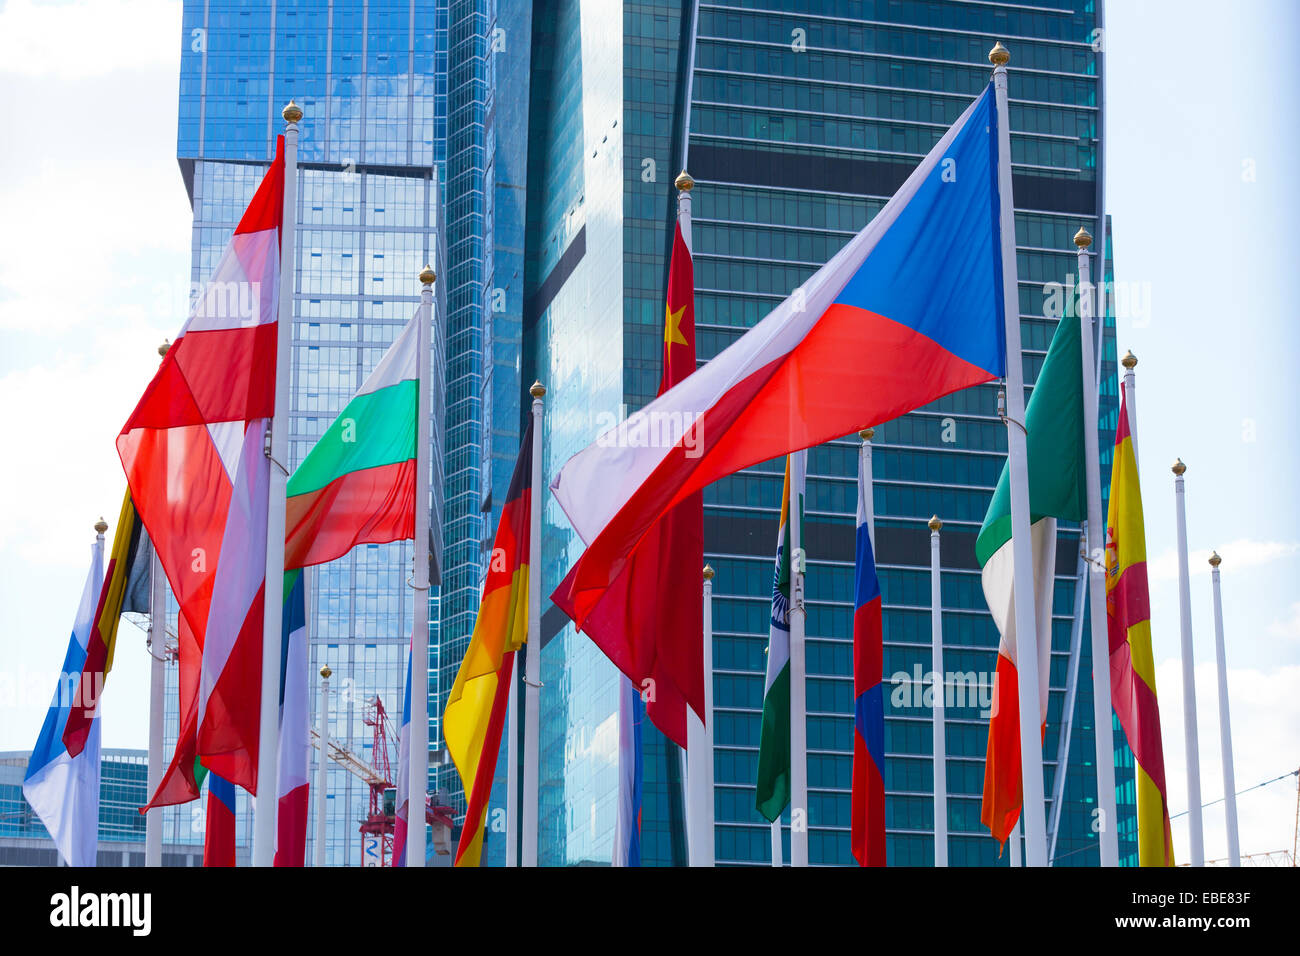 Flags of the different countries against the business center - Stock Image